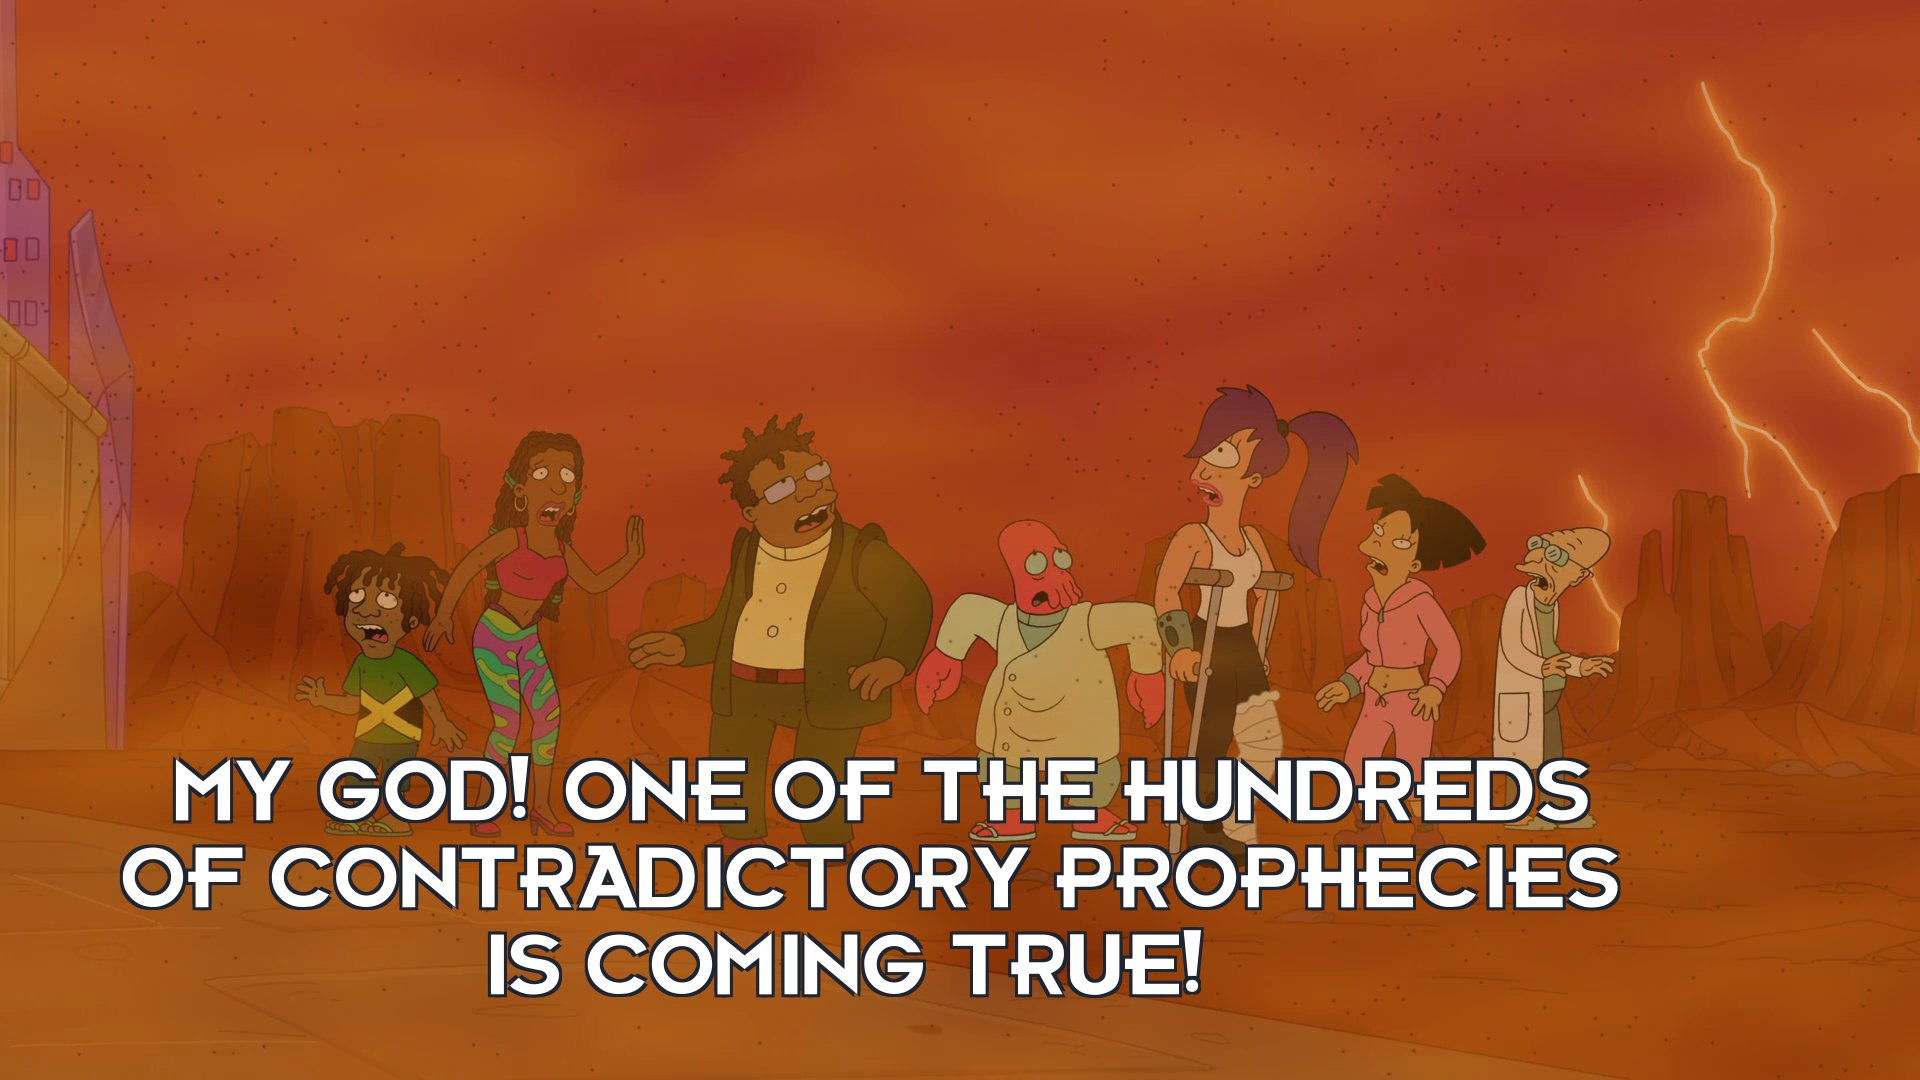 Hermes Conrad: My god! One of the hundreds of contradictory prophecies is coming true!